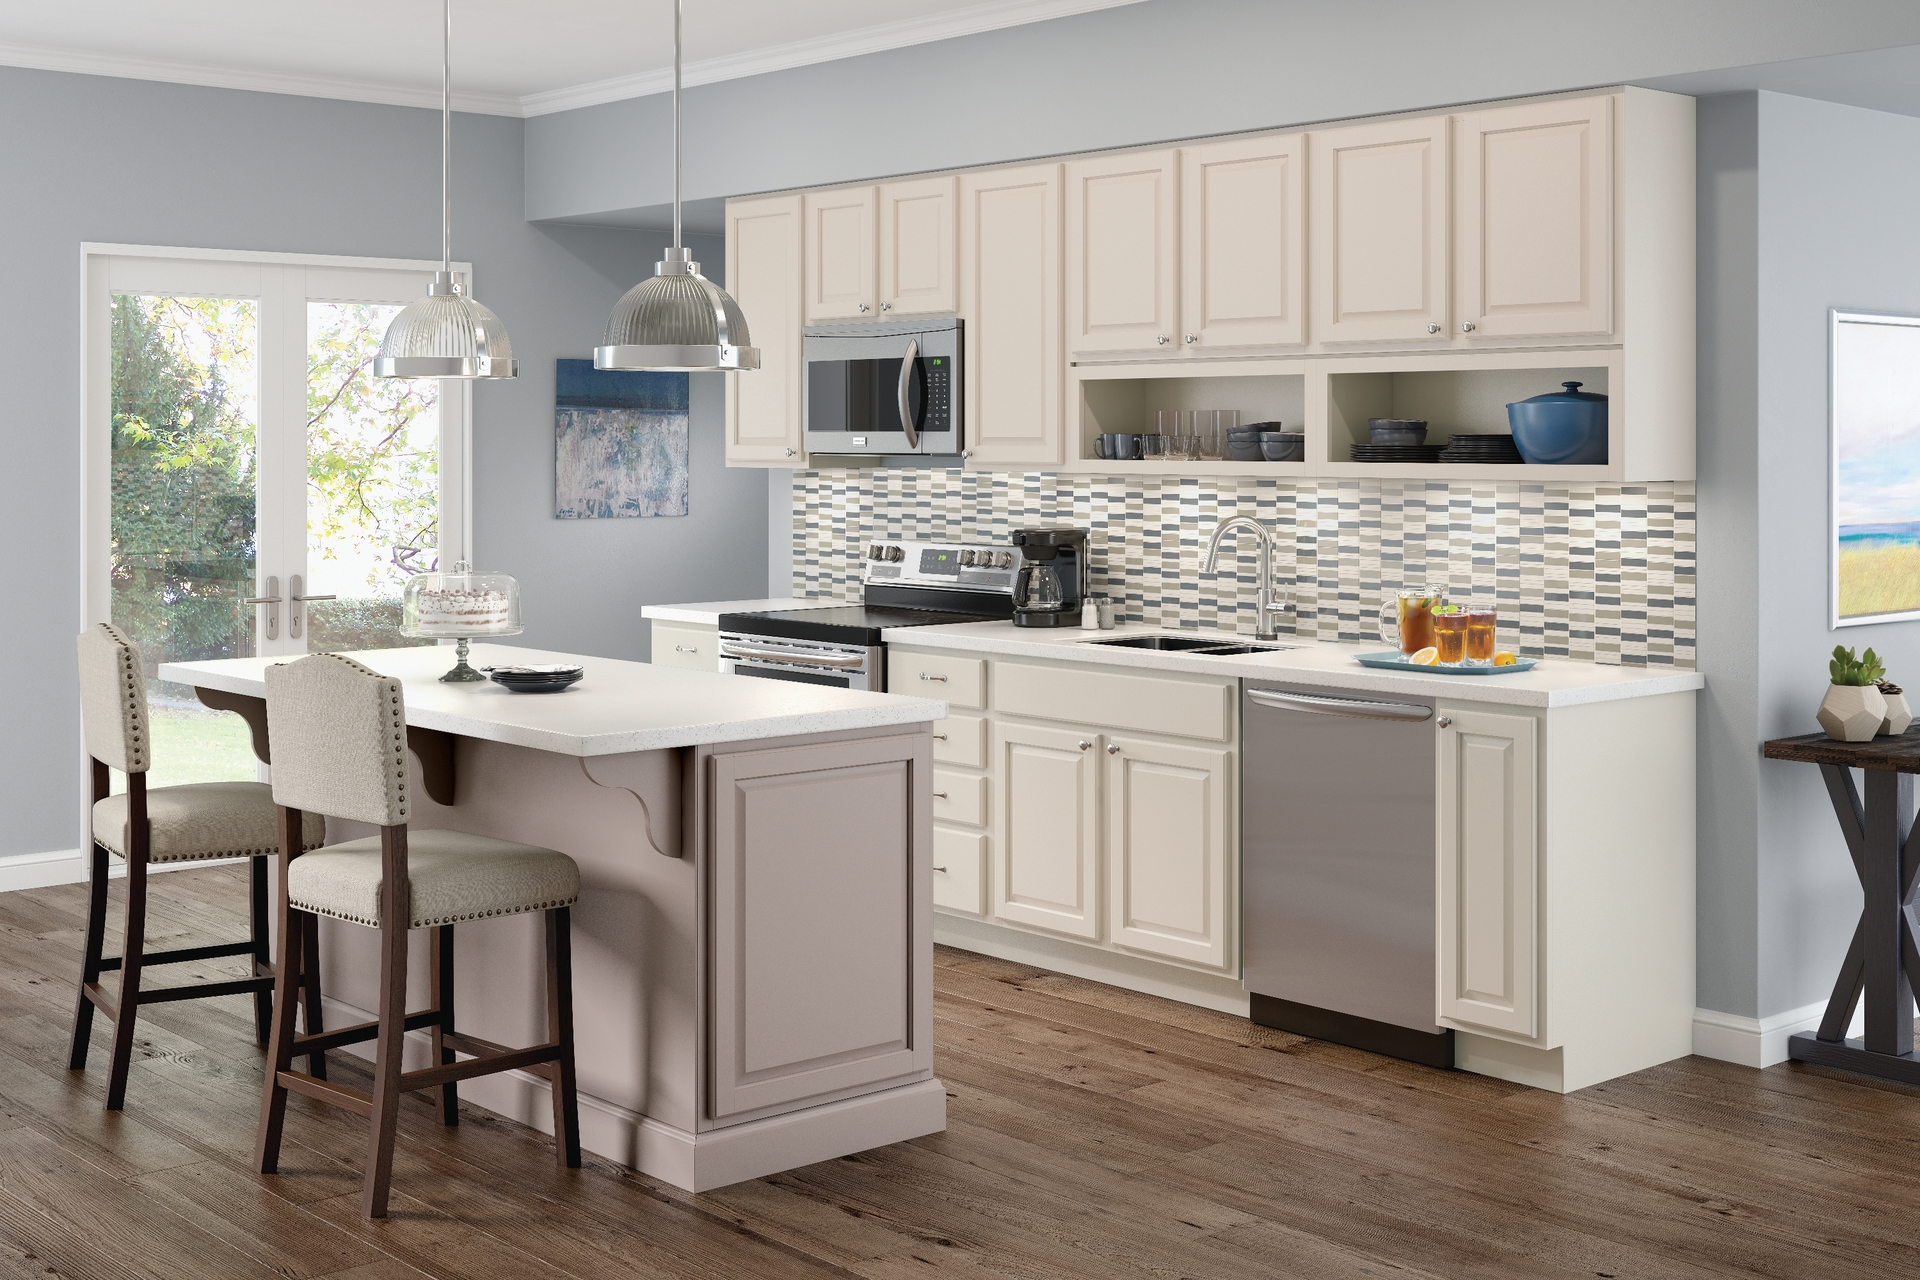 Cardell Kitchen Cabinets  Sharon Hill Square in Moonshine